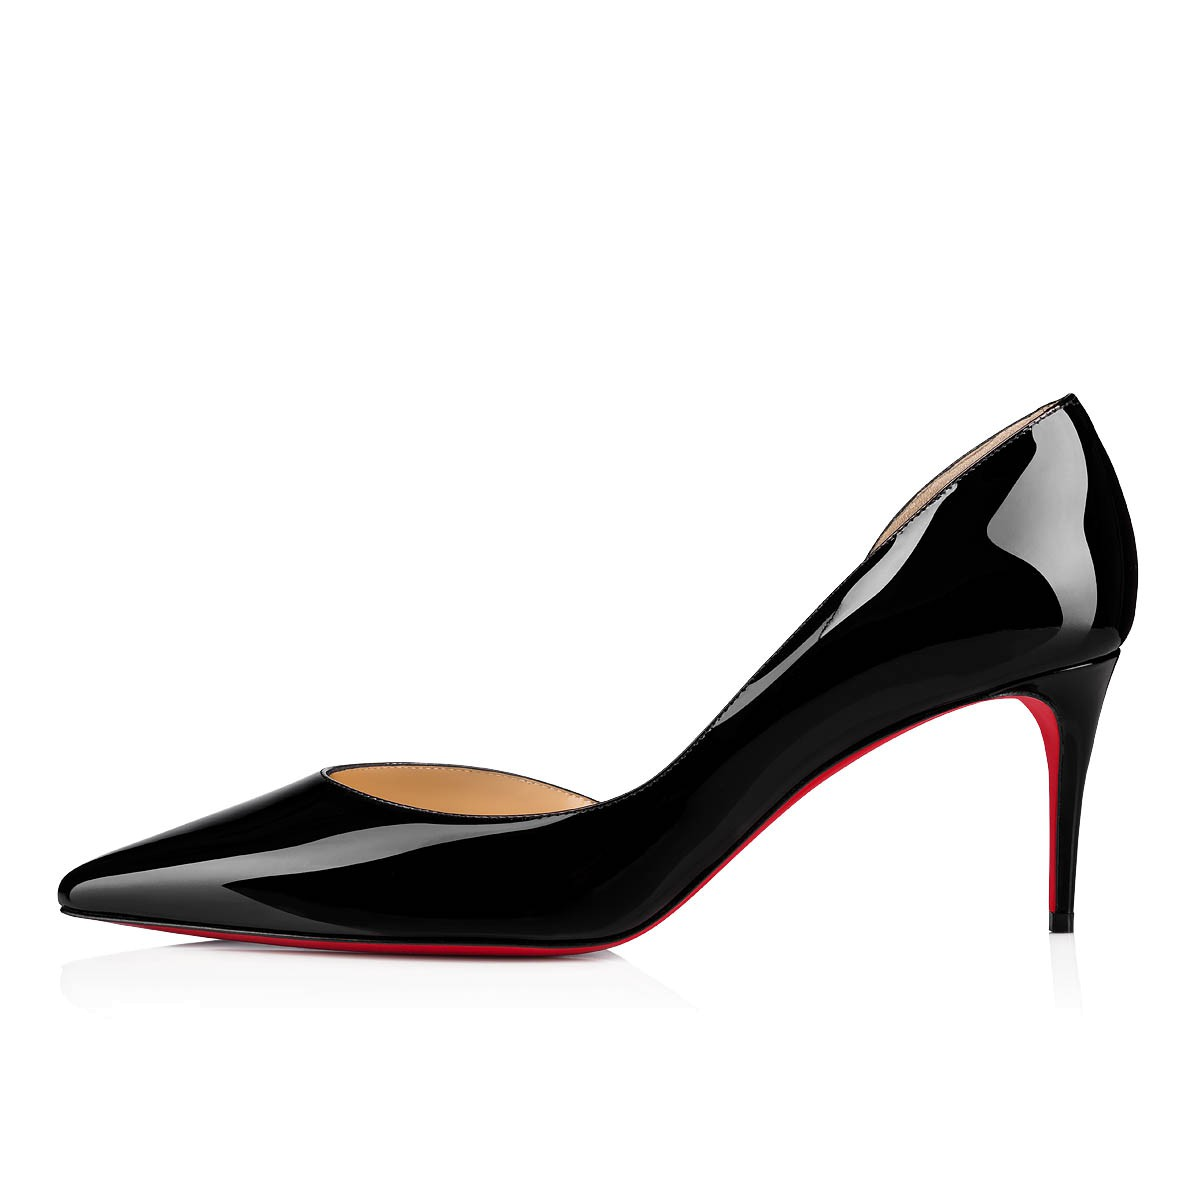 Shoes - Iriza - Christian Louboutin